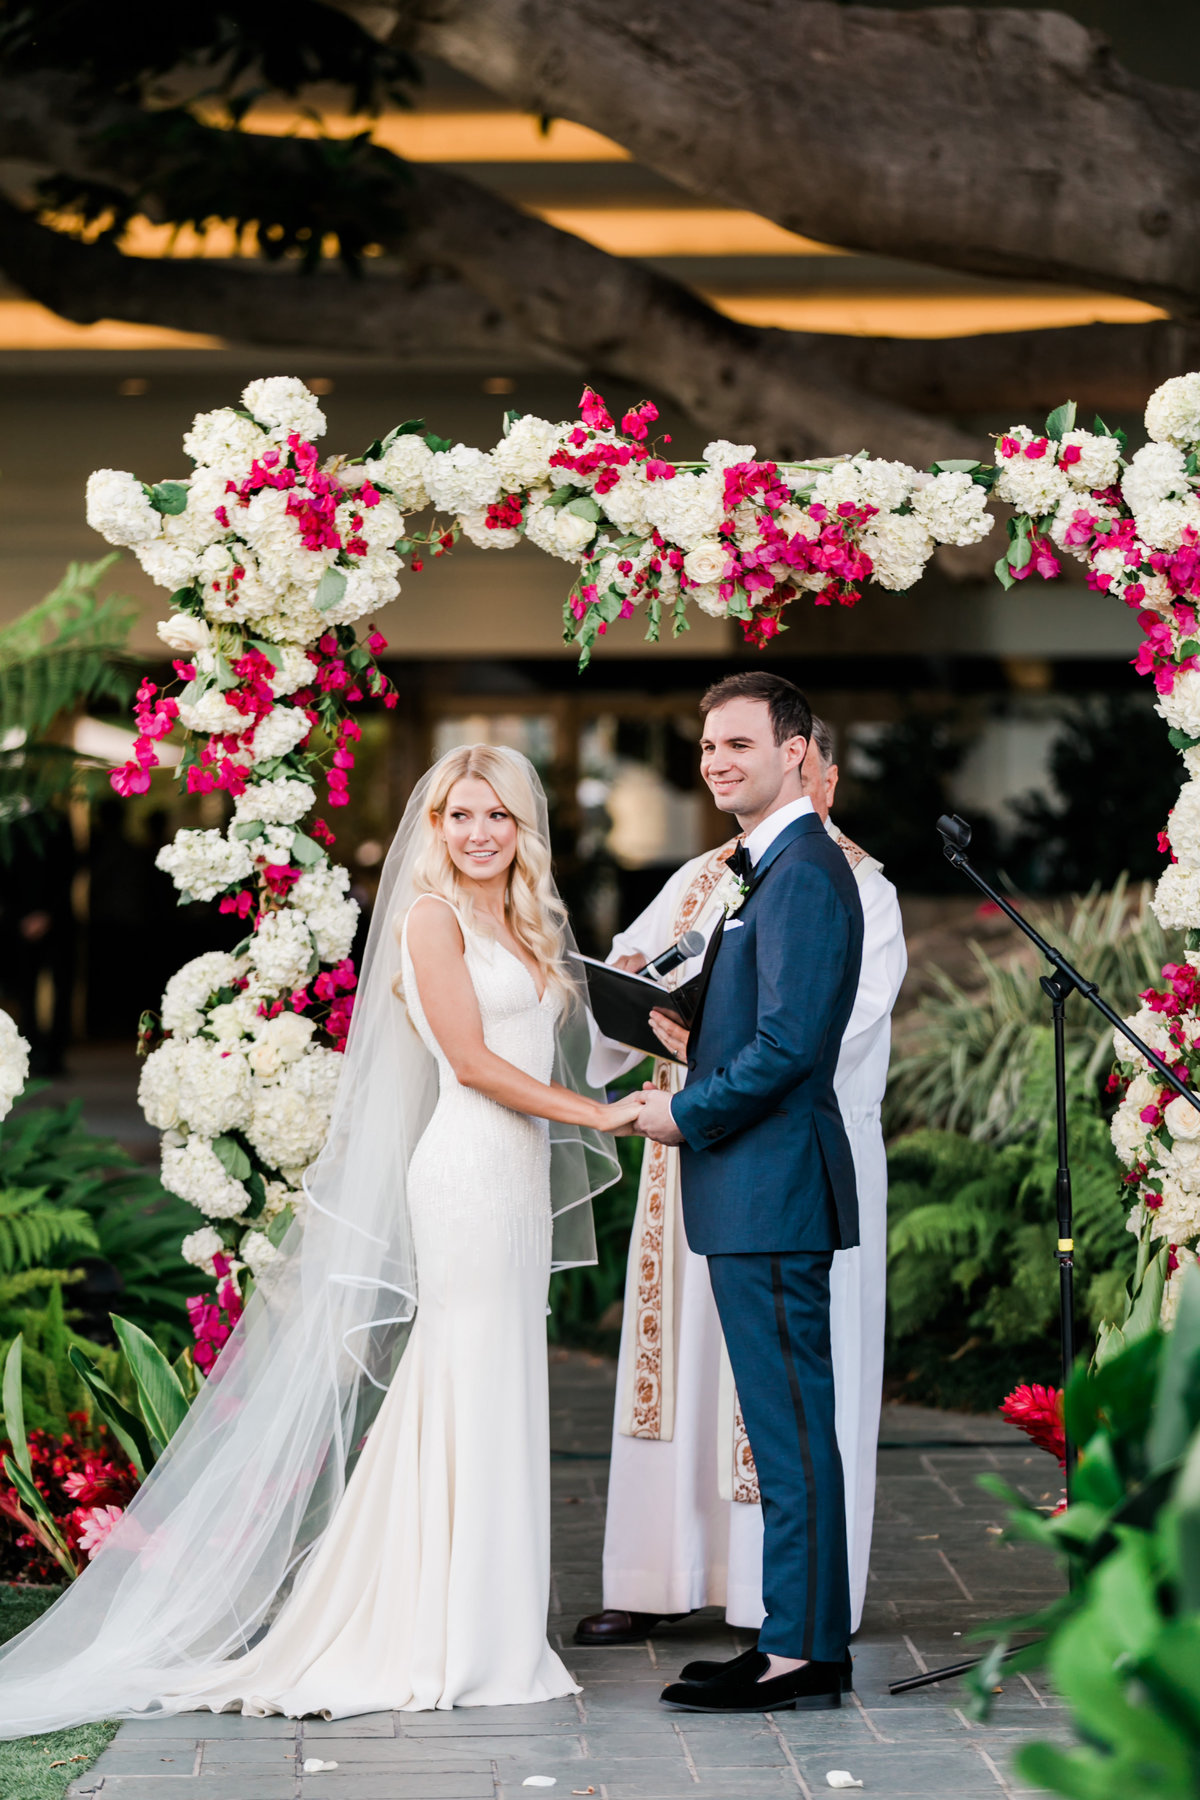 Tropical_Modern_Fairmont_Santa_Monica_Navy_Pink_Wedding_Valorie_Darling_Photography - 83 of 146